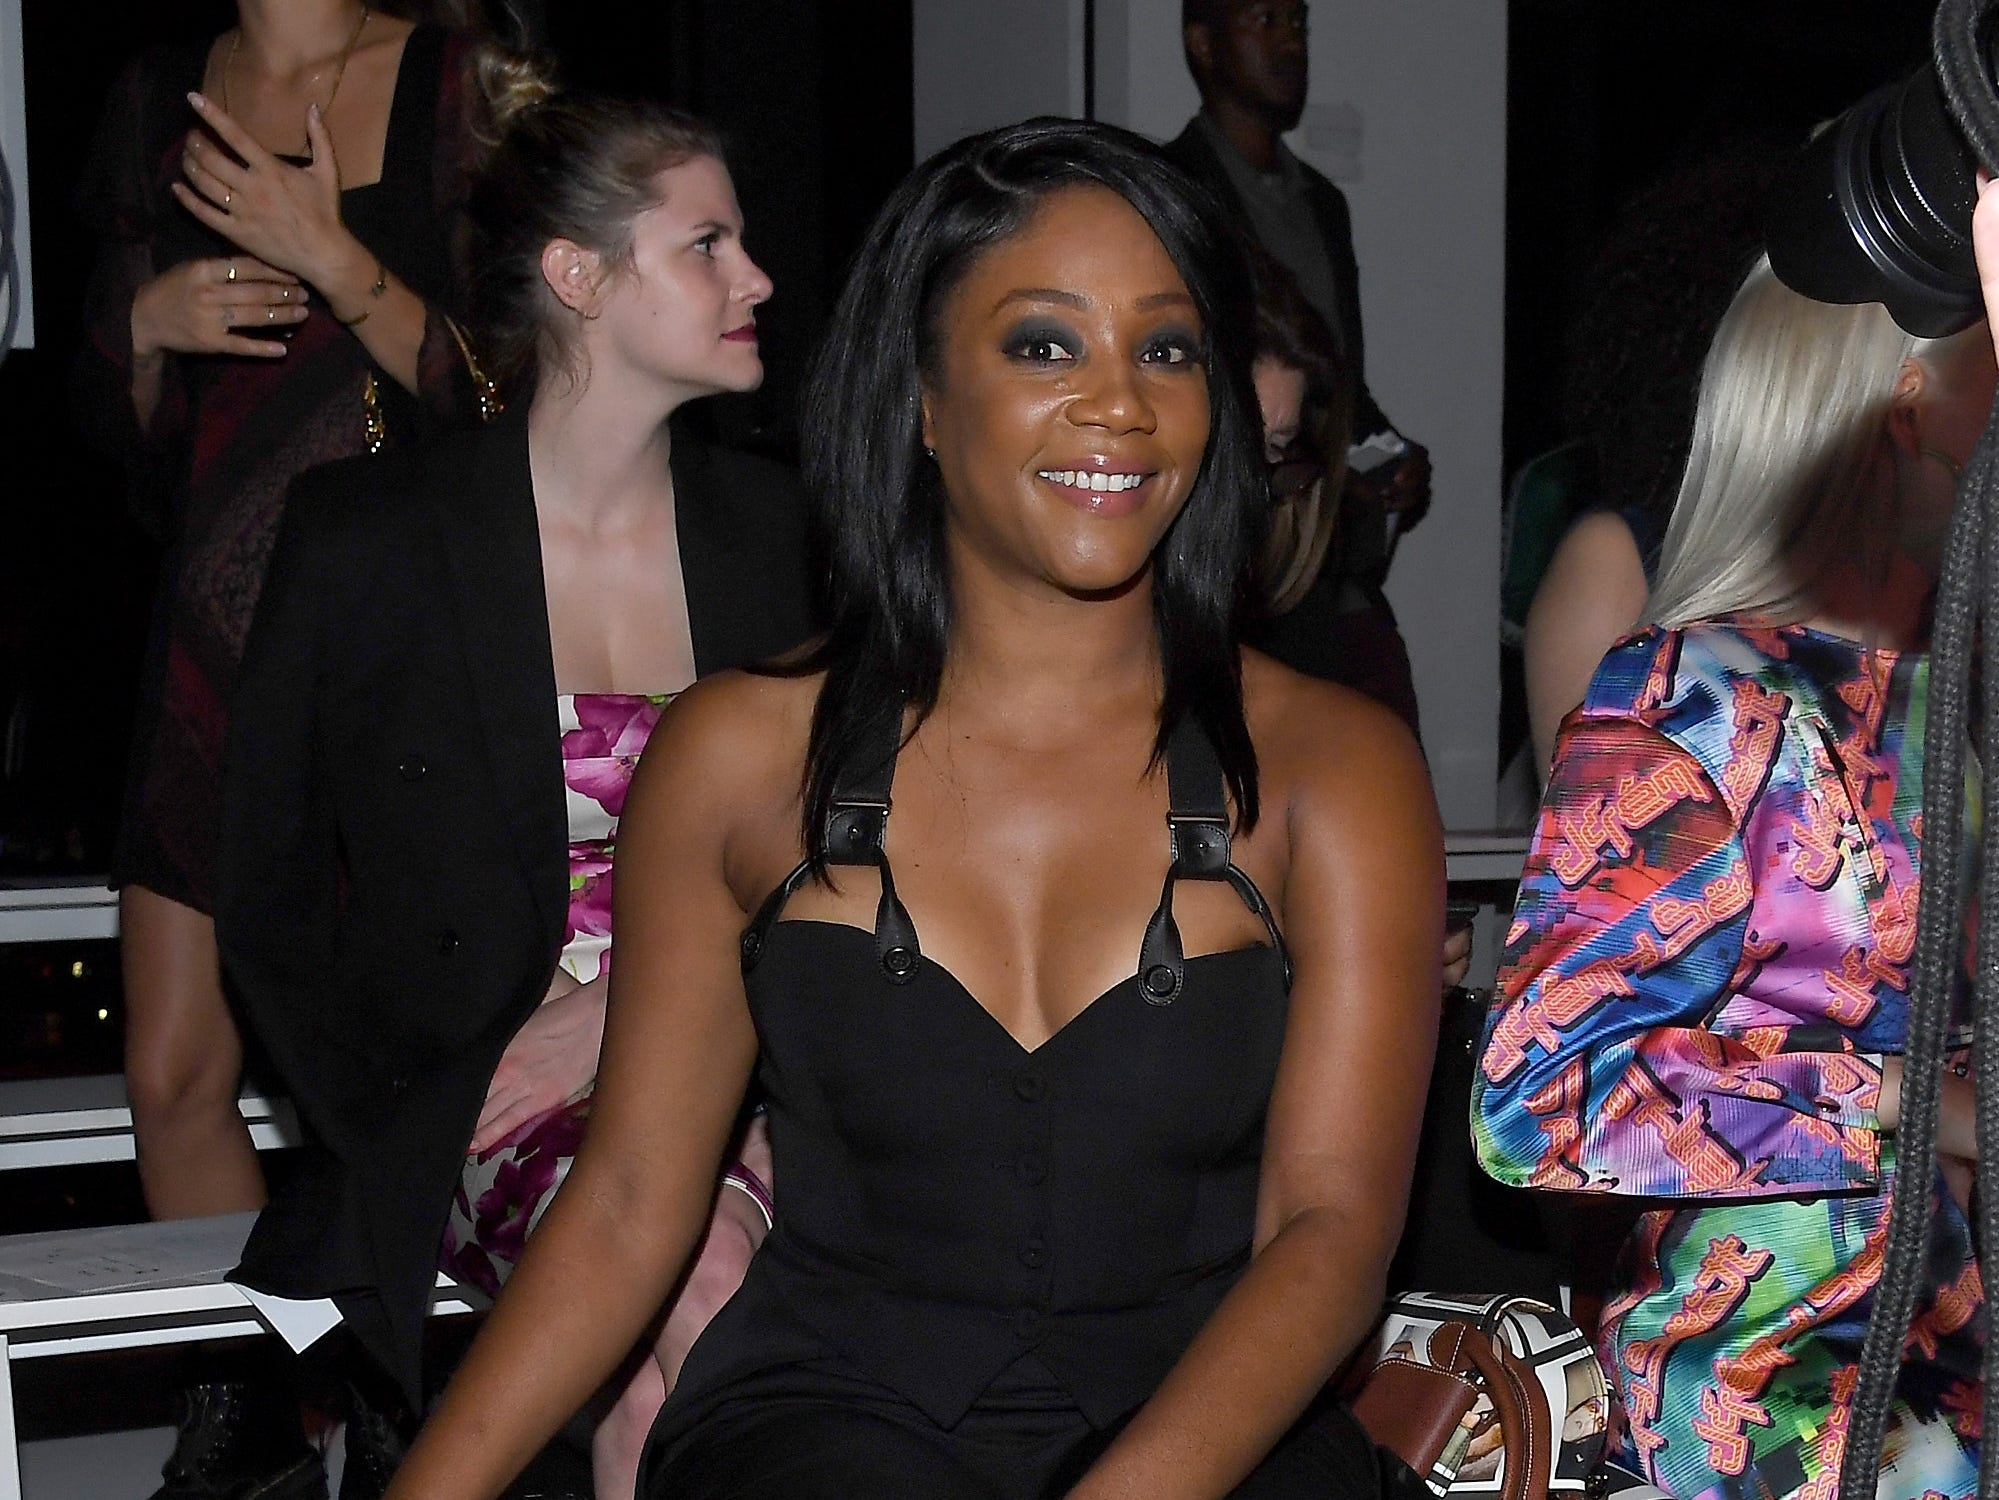 NEW YORK, NY - SEPTEMBER 06:  Tiffany Haddish attends the Jeremy Scott front row during New York Fashion Week: The Shows at Gallery I at Spring Studios on September 6, 2018 in New York City.  (Photo by Nicholas Hunt/Getty Images for NYFW: The Shows) ORG XMIT: 775215639 ORIG FILE ID: 1028019996